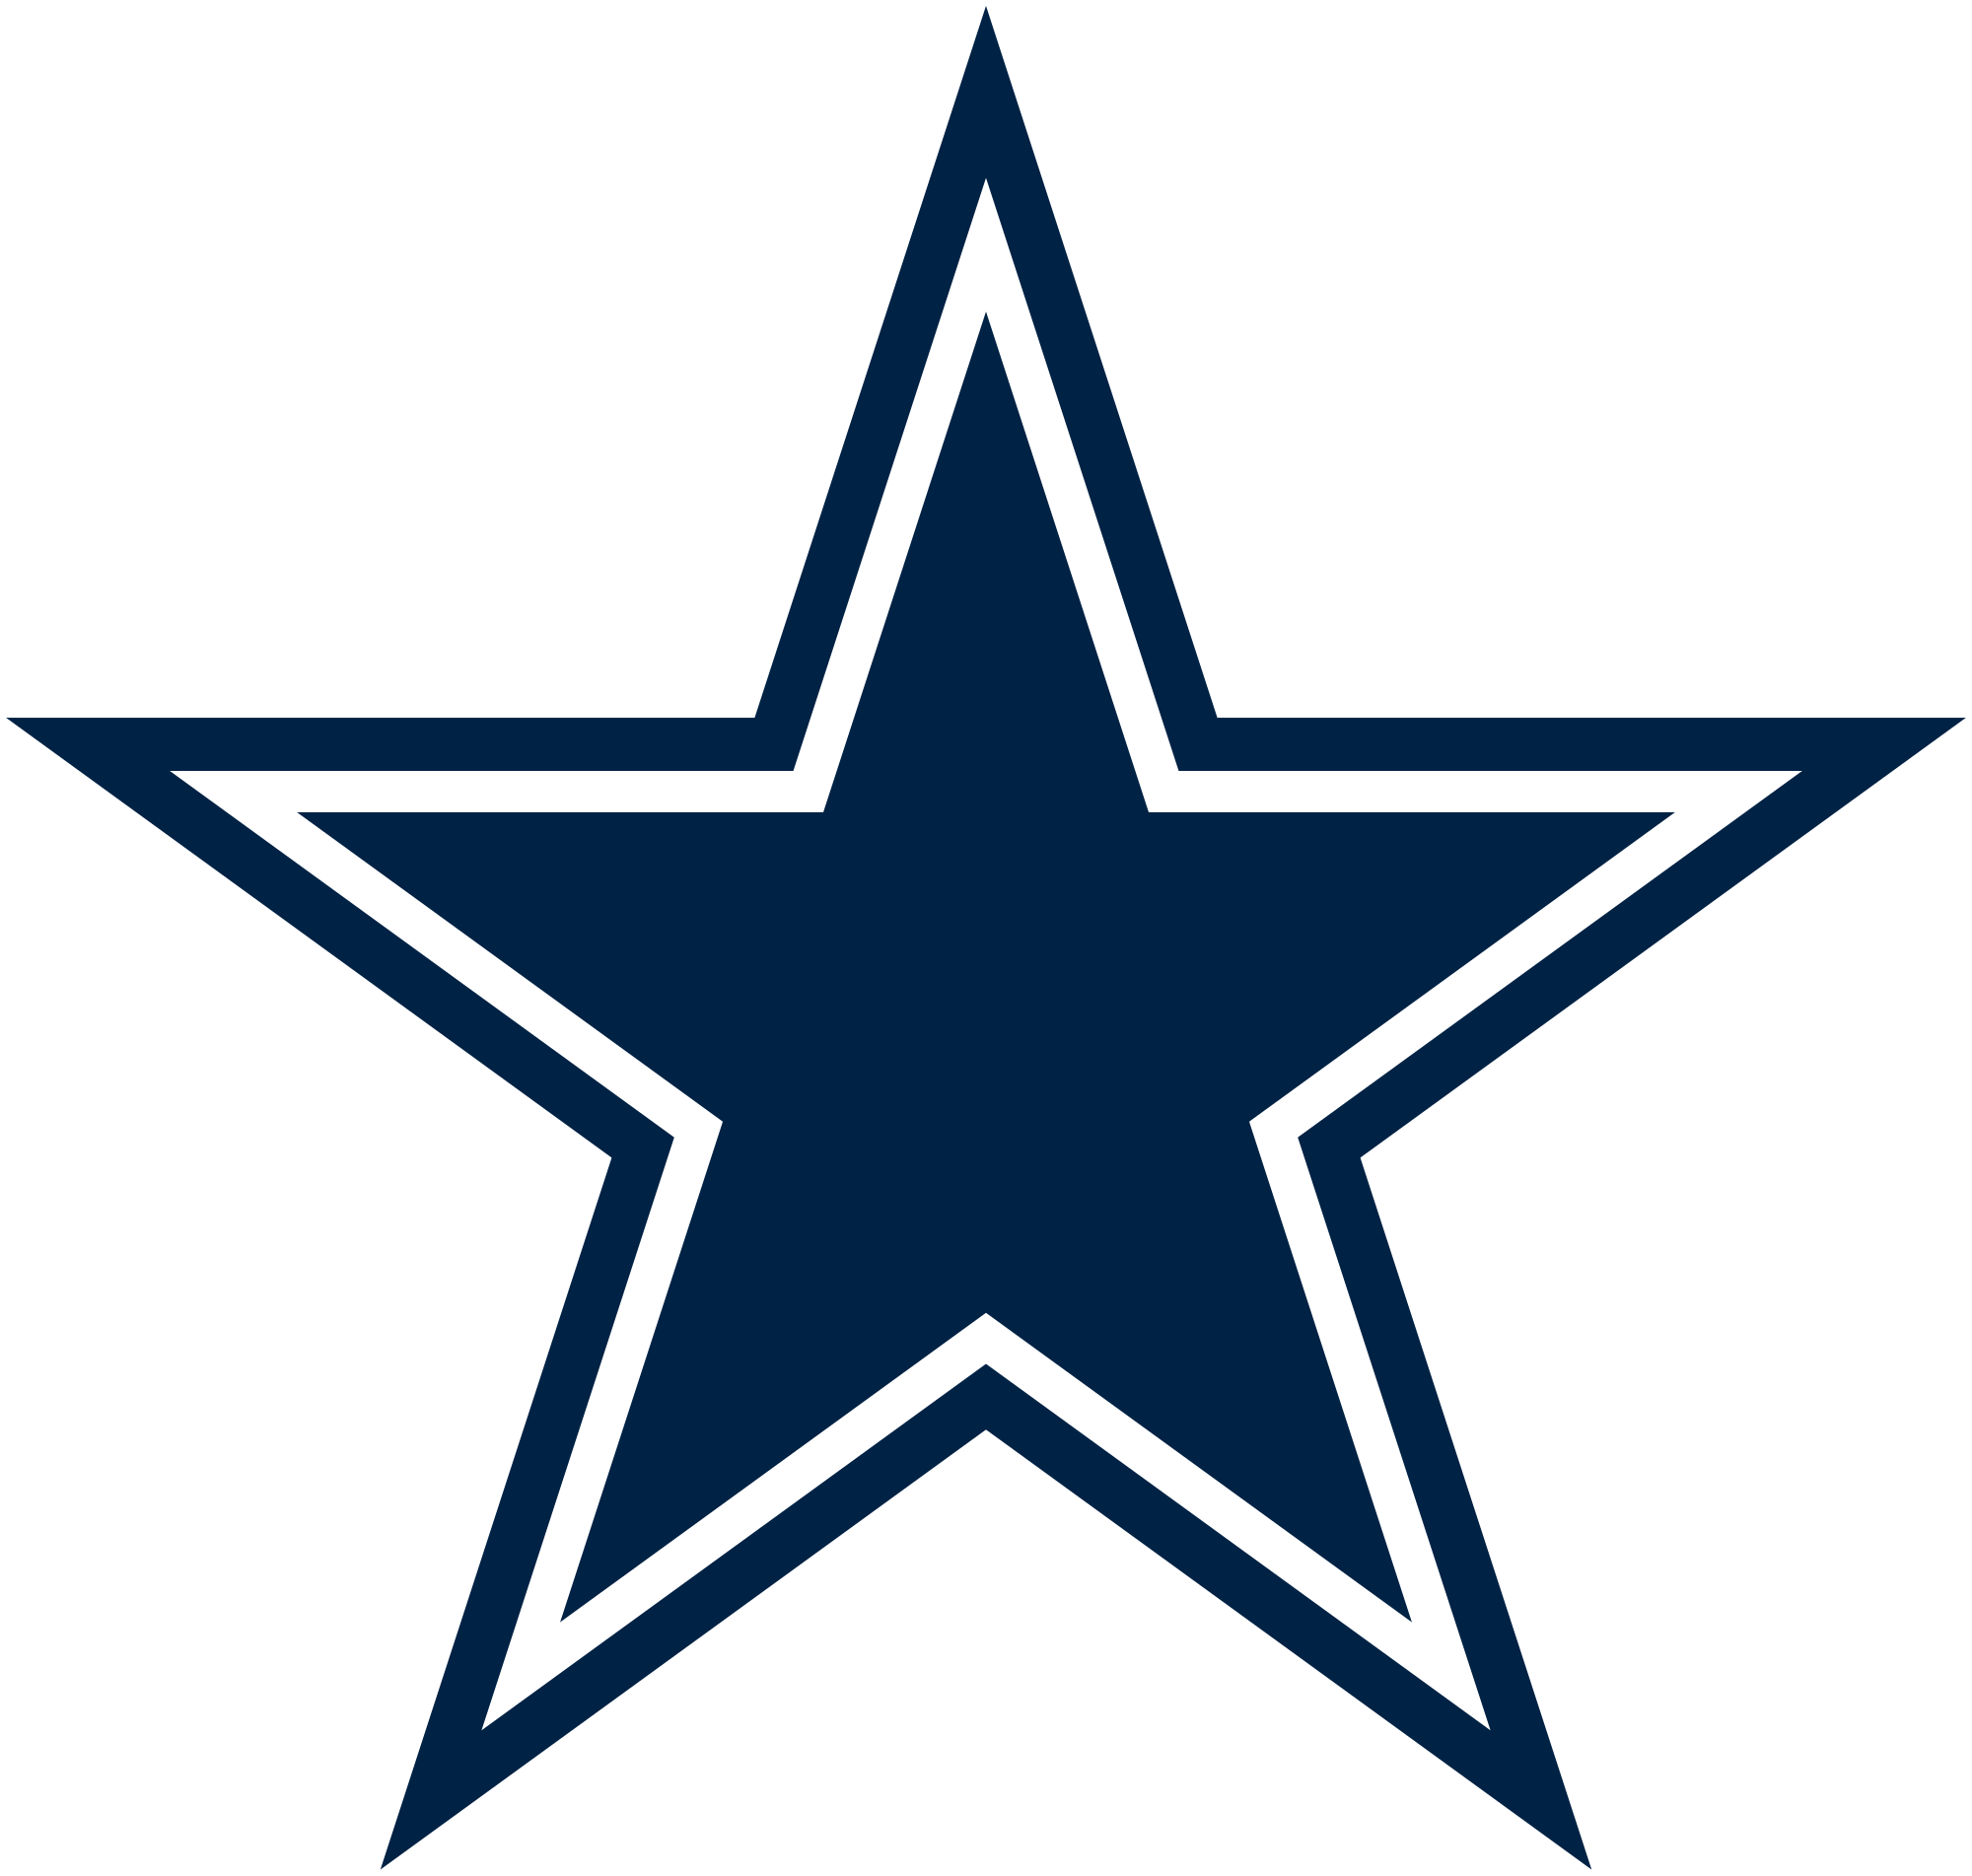 Hq png transparent images. Dallas cowboys clipart bandanas banner